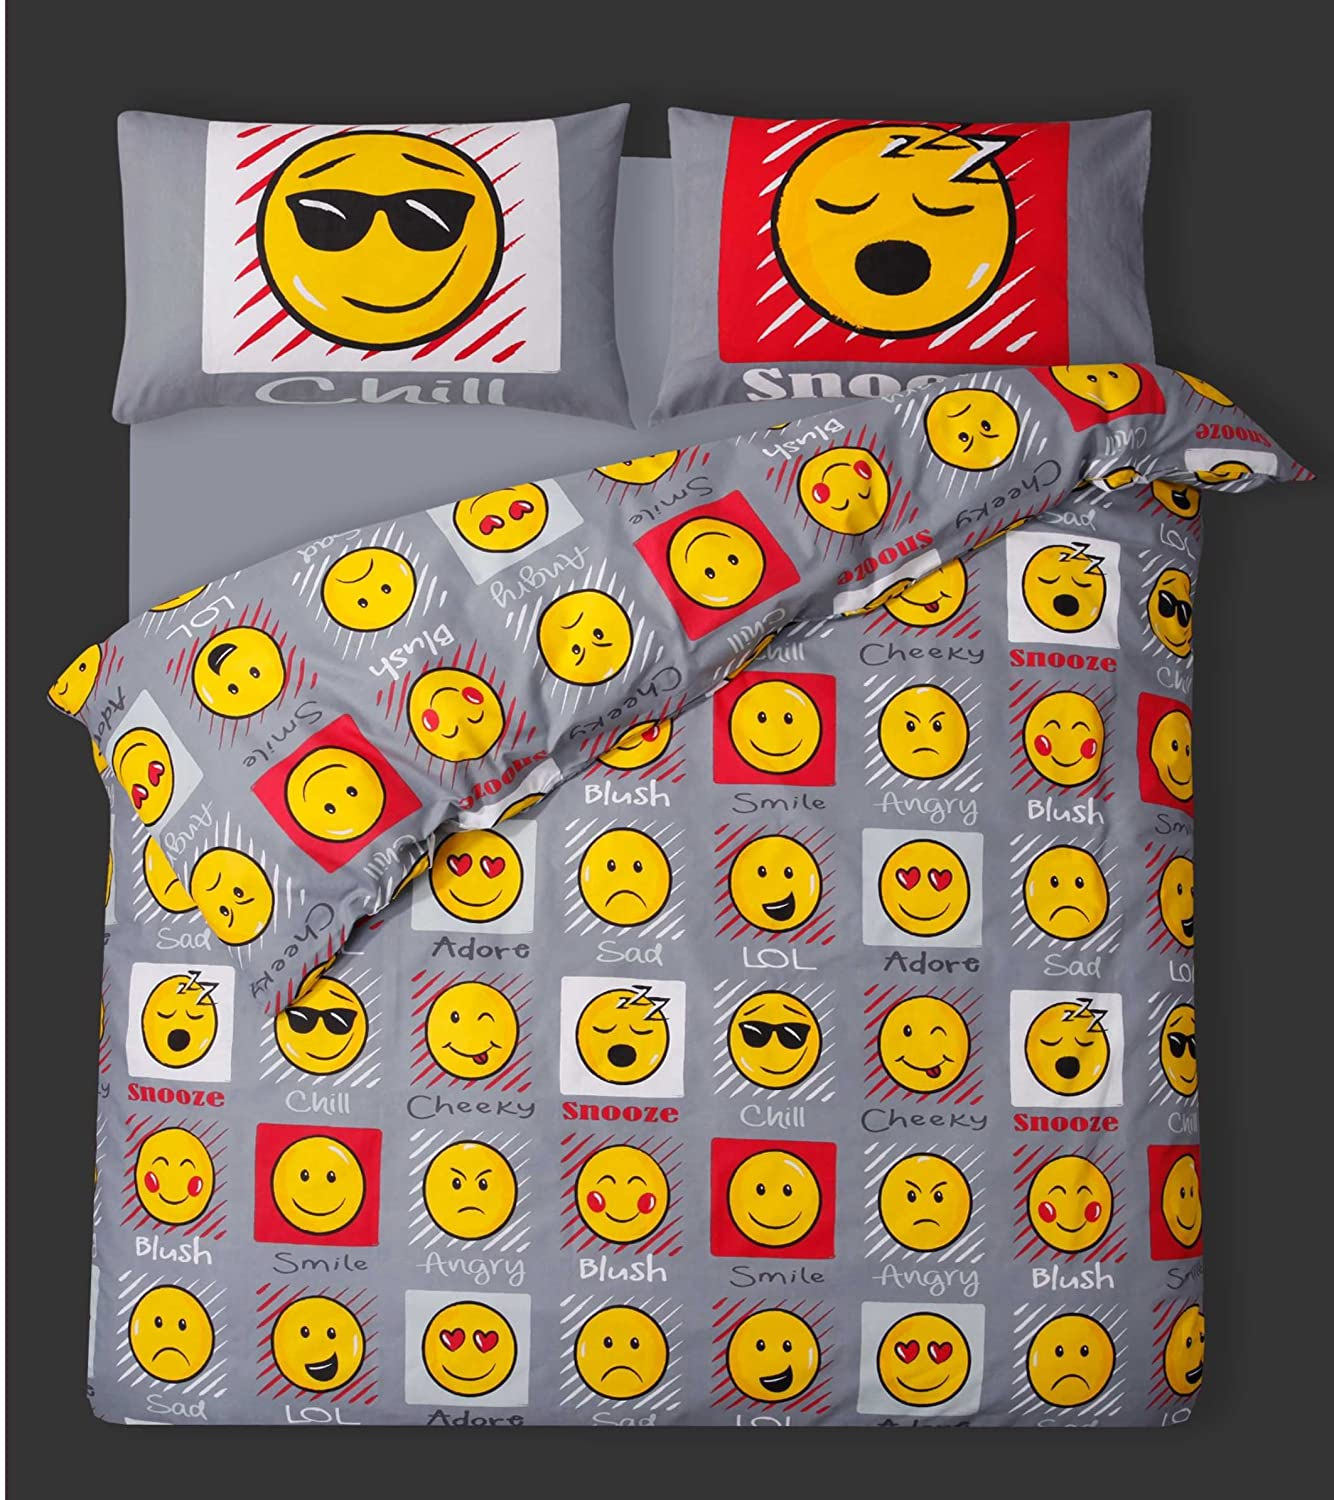 Emoticon Emoji Smiley Expressions Print Single Bed Duvet Cover and Pillowcase Set Angel's HUB